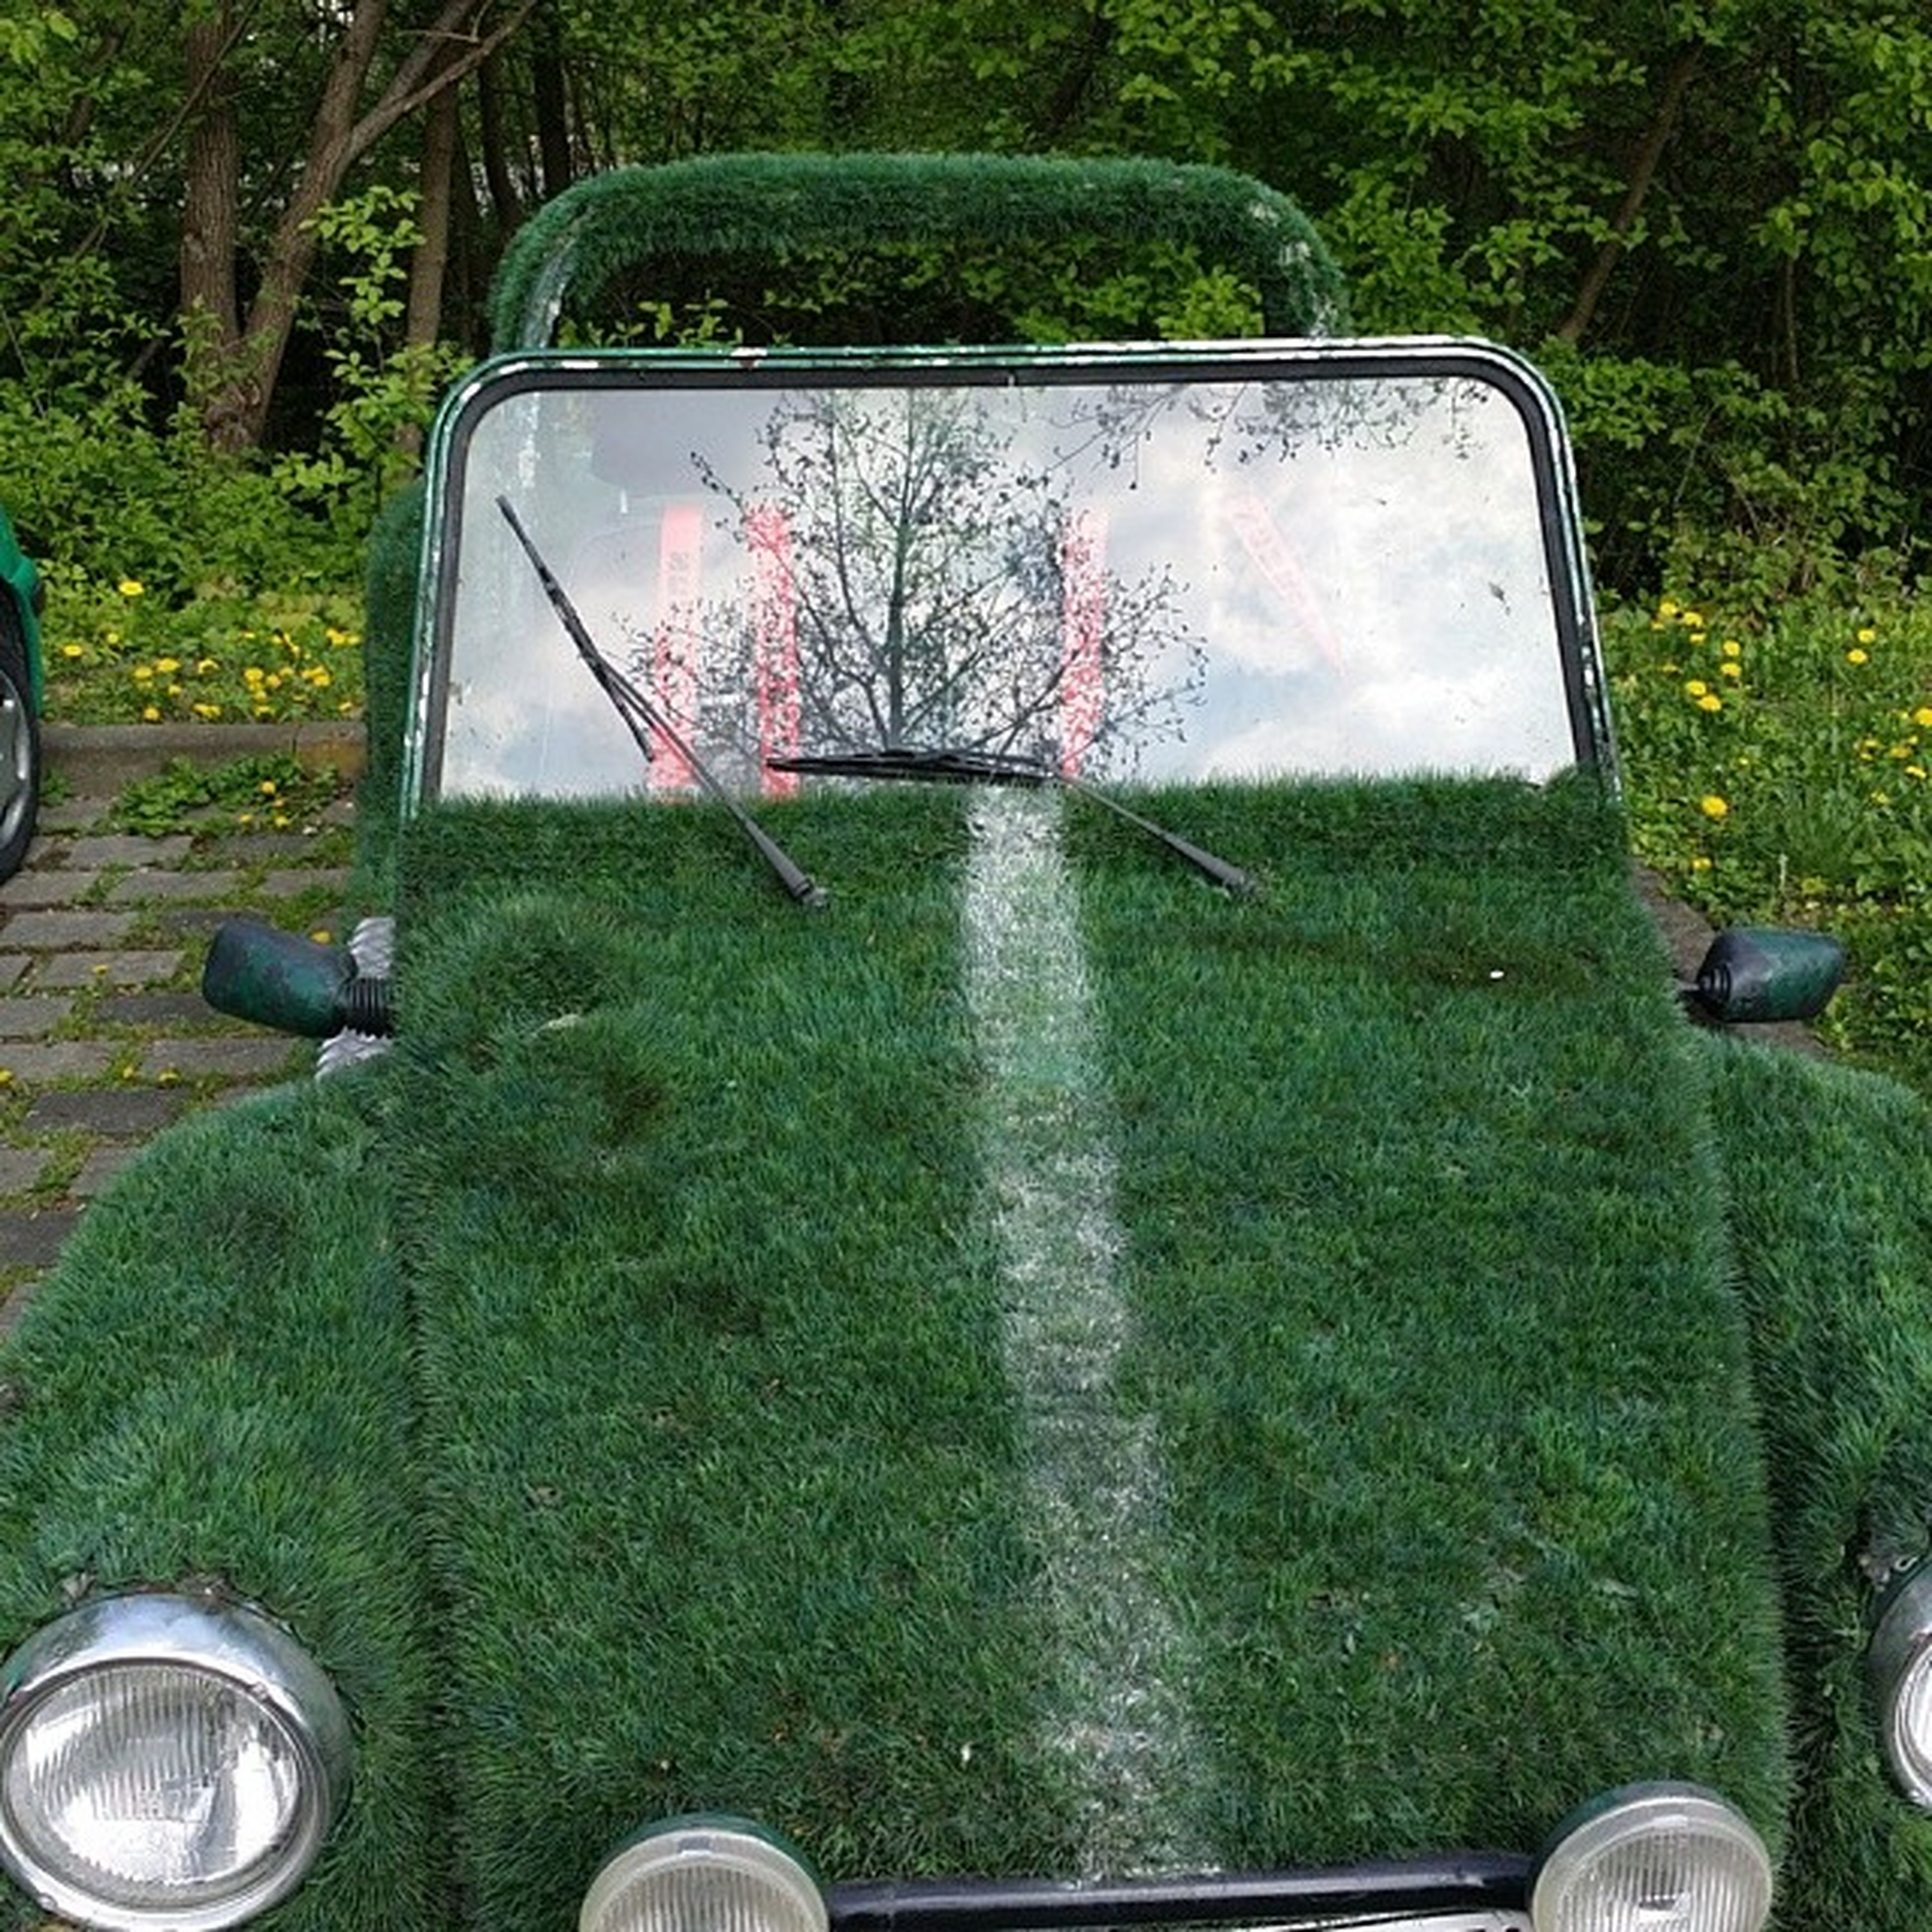 grass, green color, tree, plant, grassy, one person, growth, glass - material, day, transportation, land vehicle, mode of transport, transparent, reflection, field, car, nature, lawn, outdoors, part of